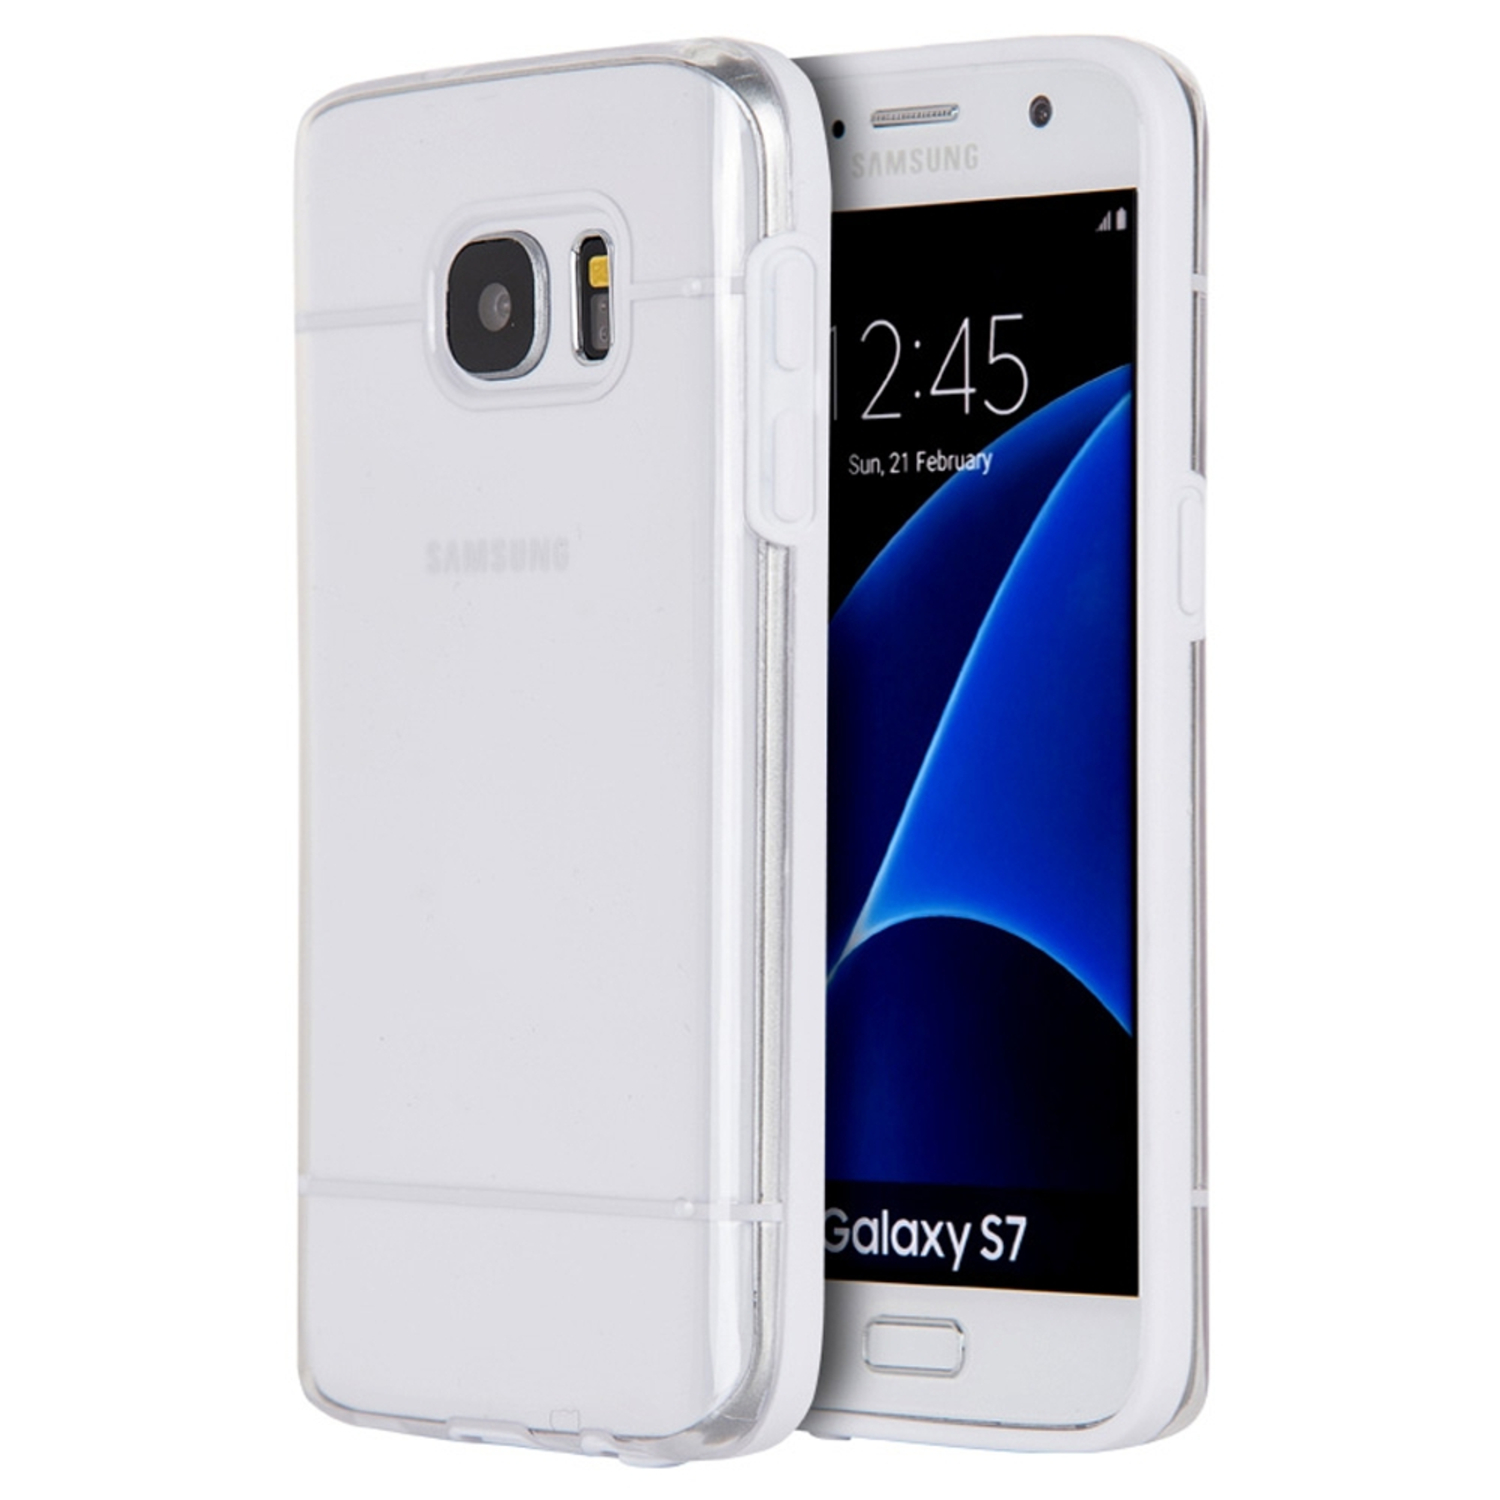 Samsung Galaxy S7 Case, by Insten TPU Rubber Candy Skin Case Cover For Samsung Galaxy S7